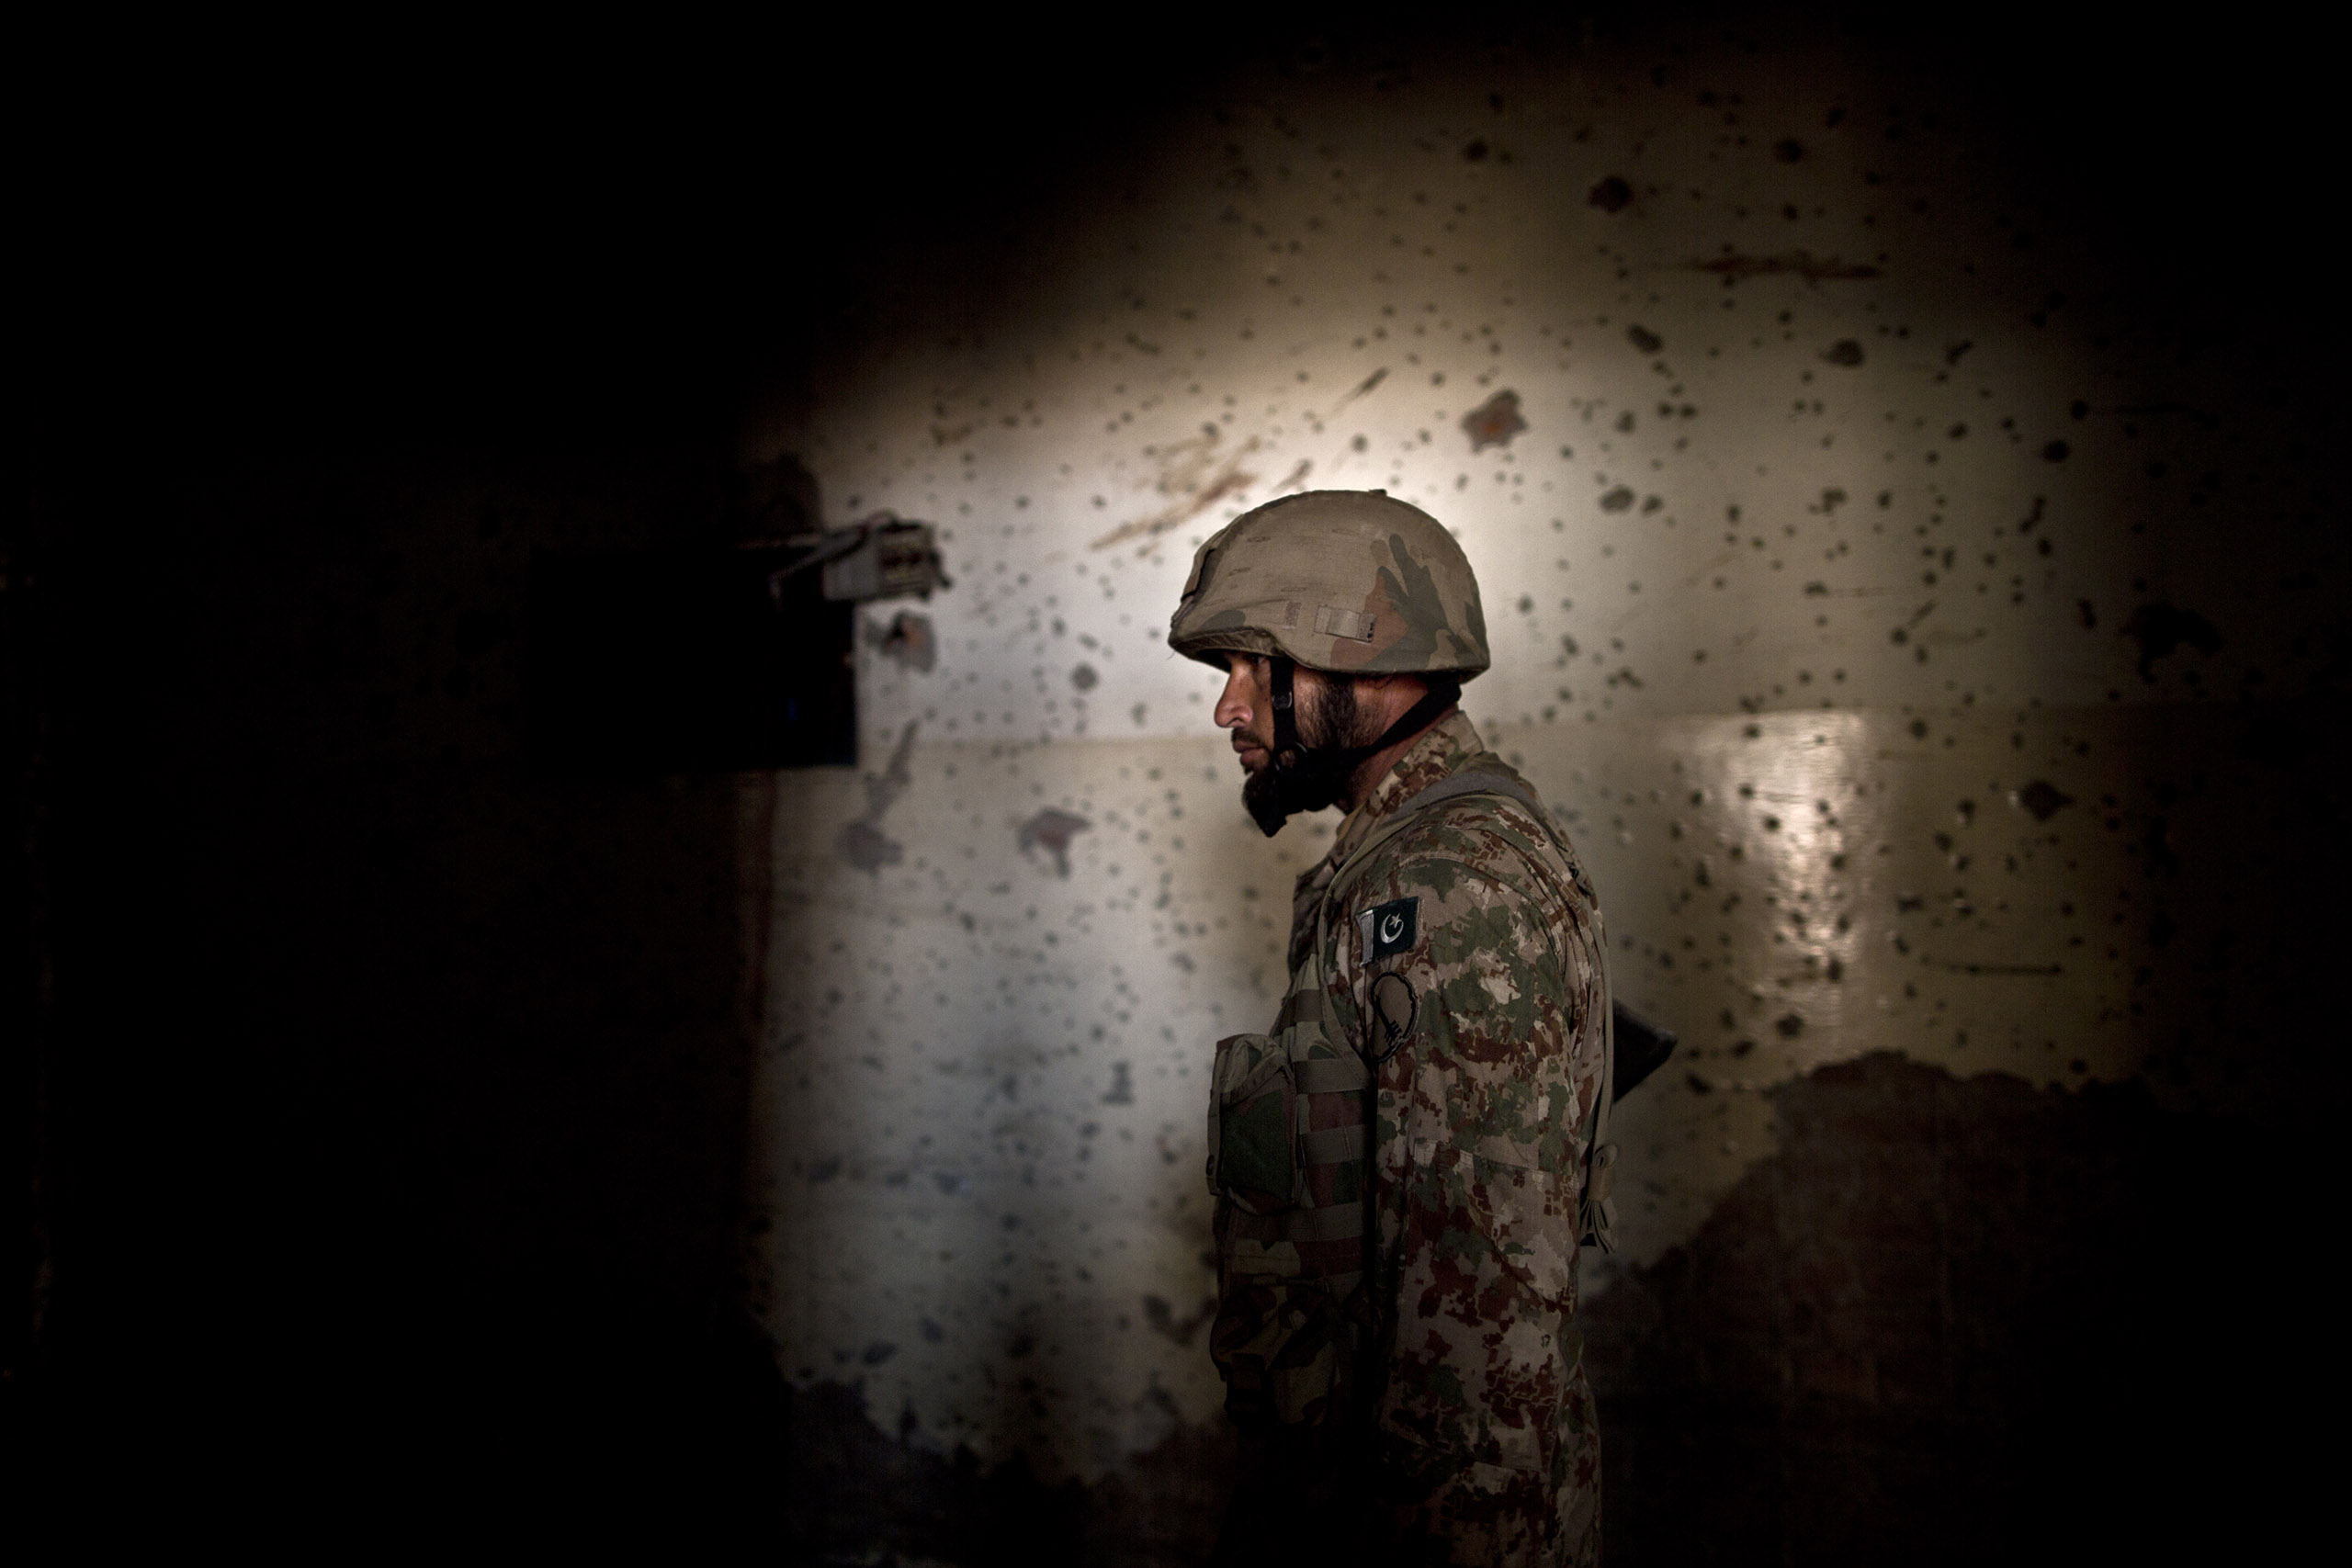 A Pakistani army officer stands in front of a bullet-riddled wall inside the Army Public School, which was attacked on Dec. 16 by the Pakistani Taliban. Peshawar, Pakistan. Dec. 18, 2014.